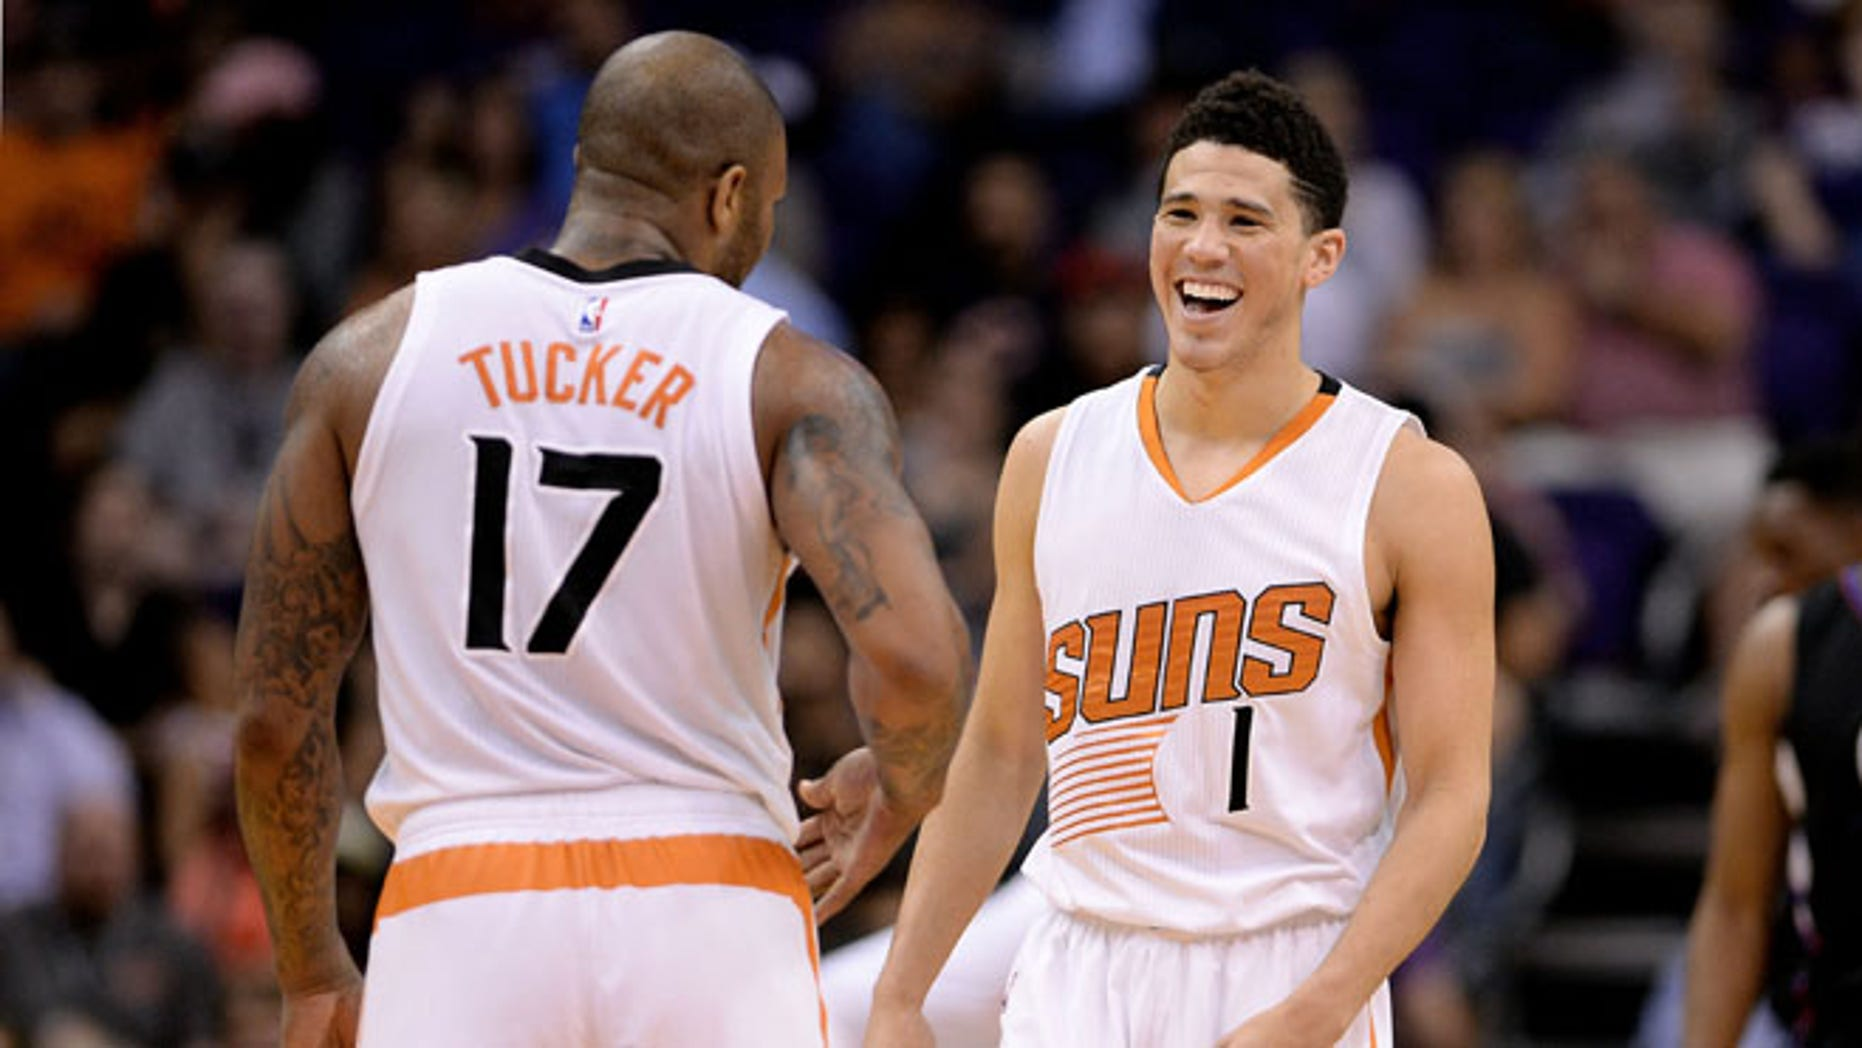 PHOENIX, AZ - APRIL 13:  Devin Booker #1 of the Phoenix Suns smiles in front of teammate P.J. Tucker #17 in the first half of the NBA game against the Los Angeles Clippers at Talking Stick Resort Arena on April 13, 2016 in Phoenix, Arizona.  The Los Angeles Clippers won 114 - 105.  NOTE TO USER: User expressly acknowledges and agrees that, by downloading and or using this photograph, User is consenting to the terms and conditions of the Getty Images License Agreement. (Photo by Jennifer Stewart/Getty Images)